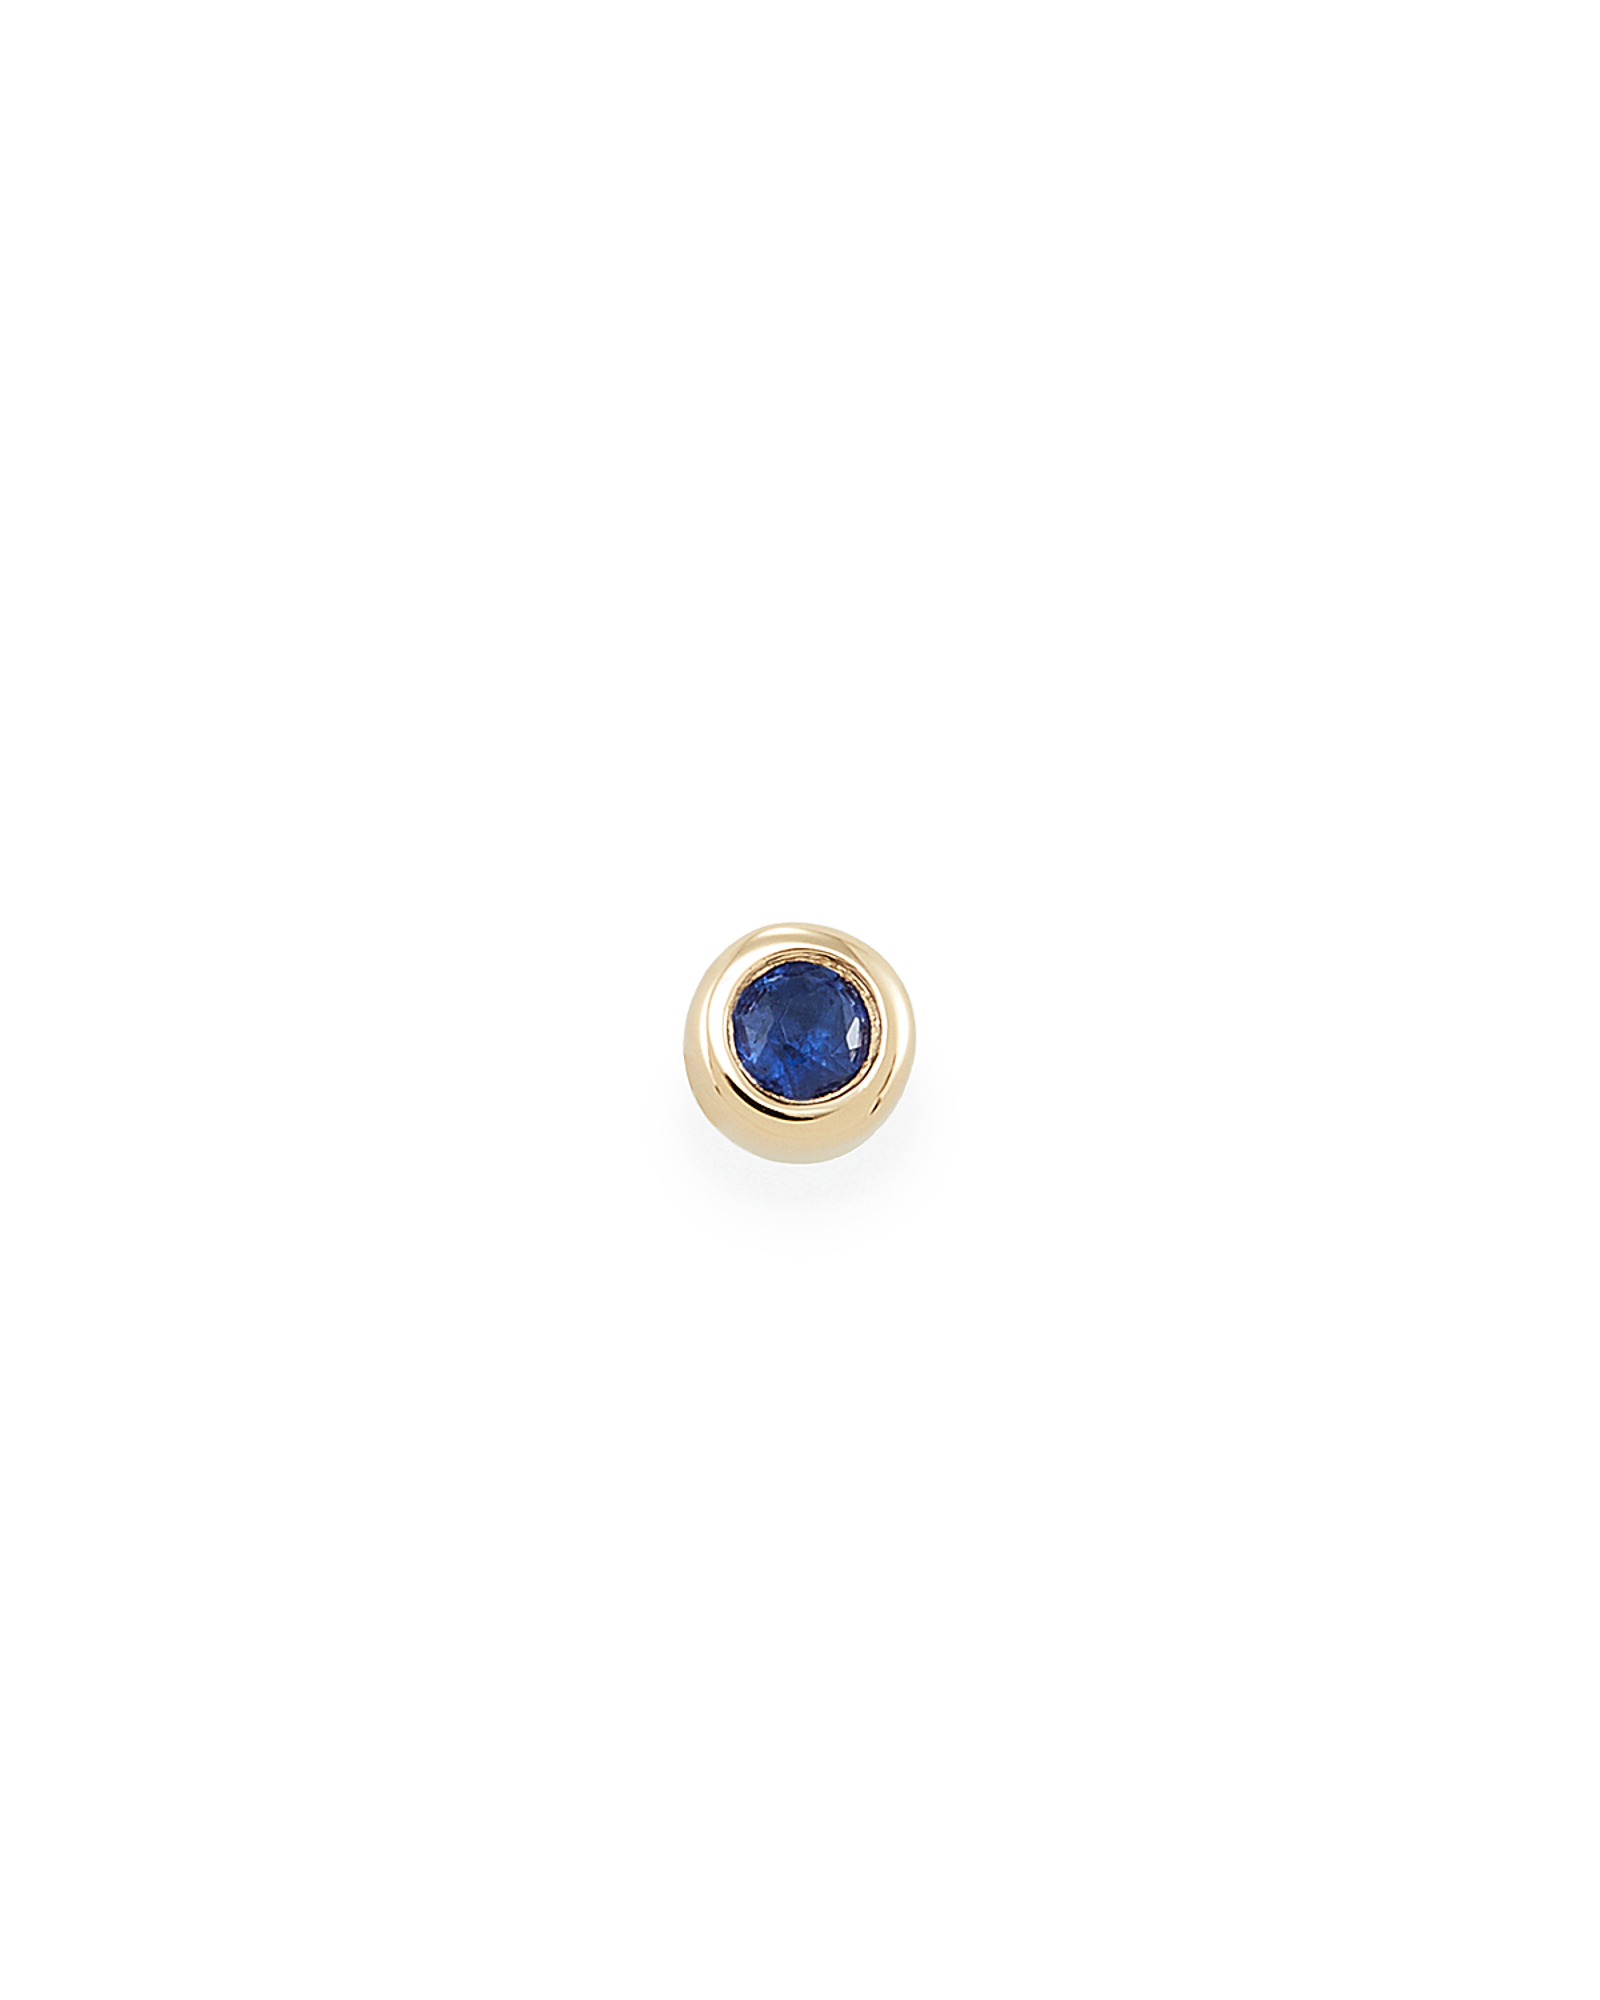 Reeve Mini 14K Yellow Gold Stud Earring in Blue Sapphire